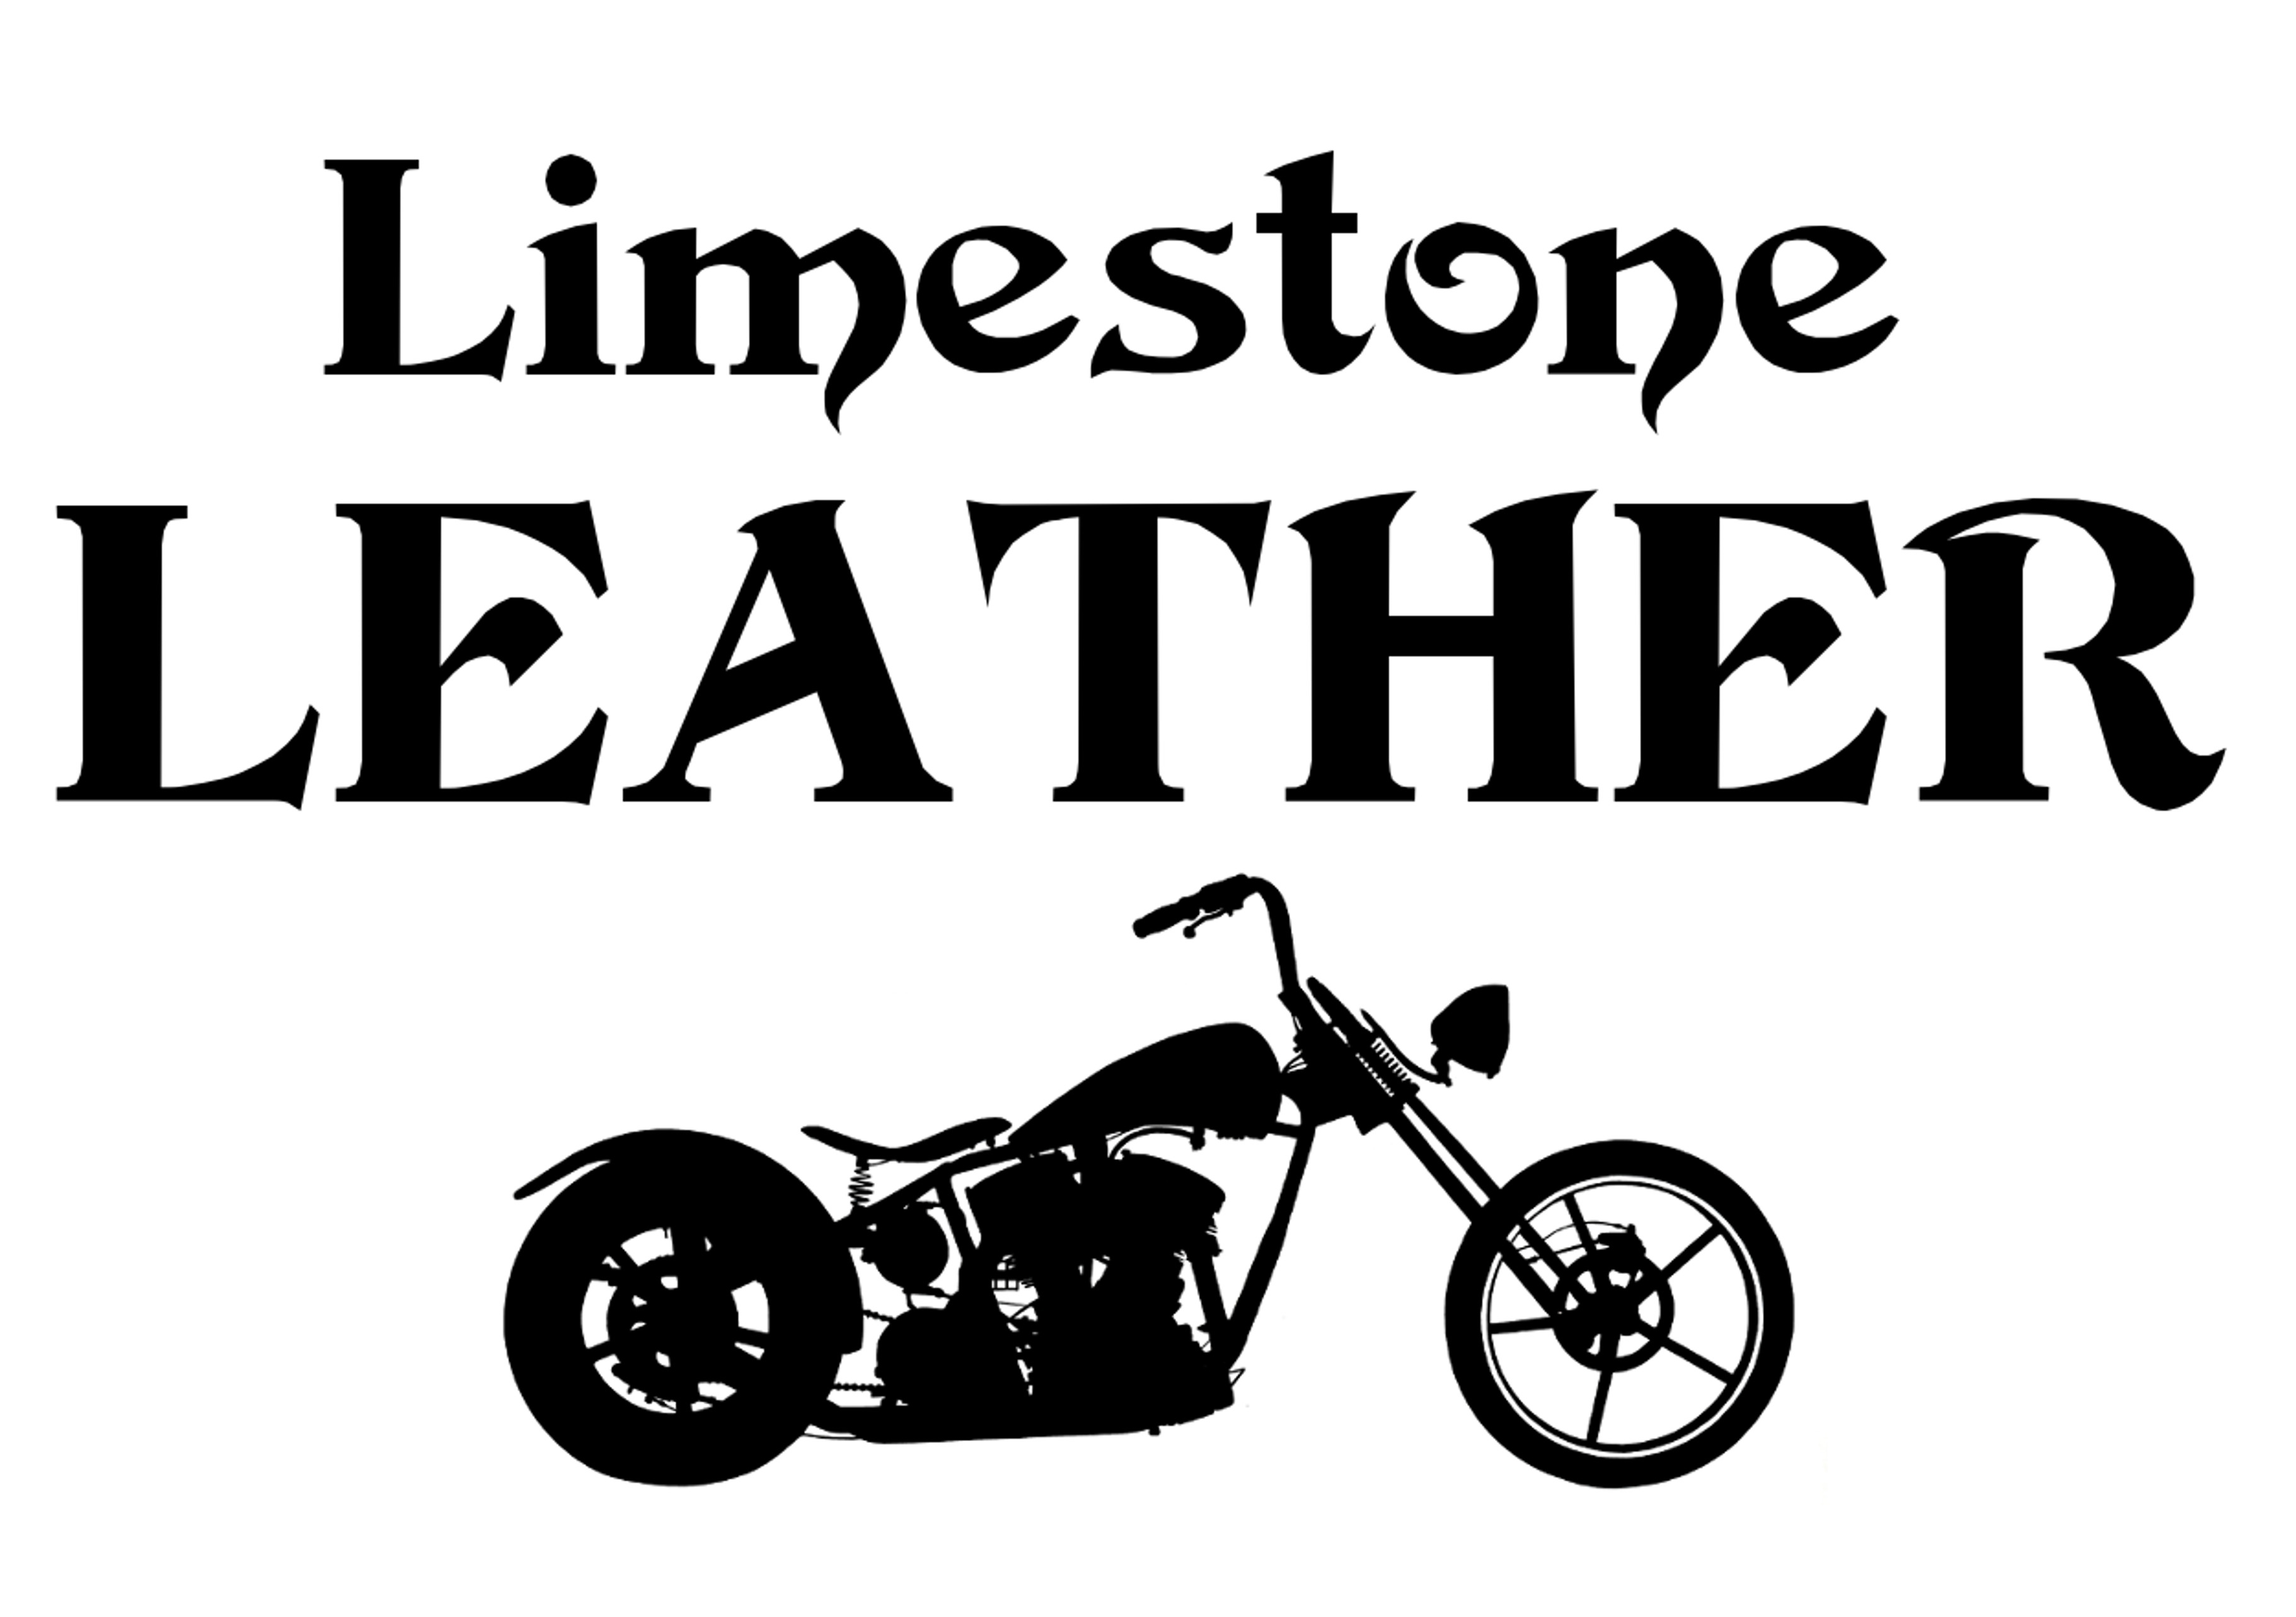 Limestone Leather